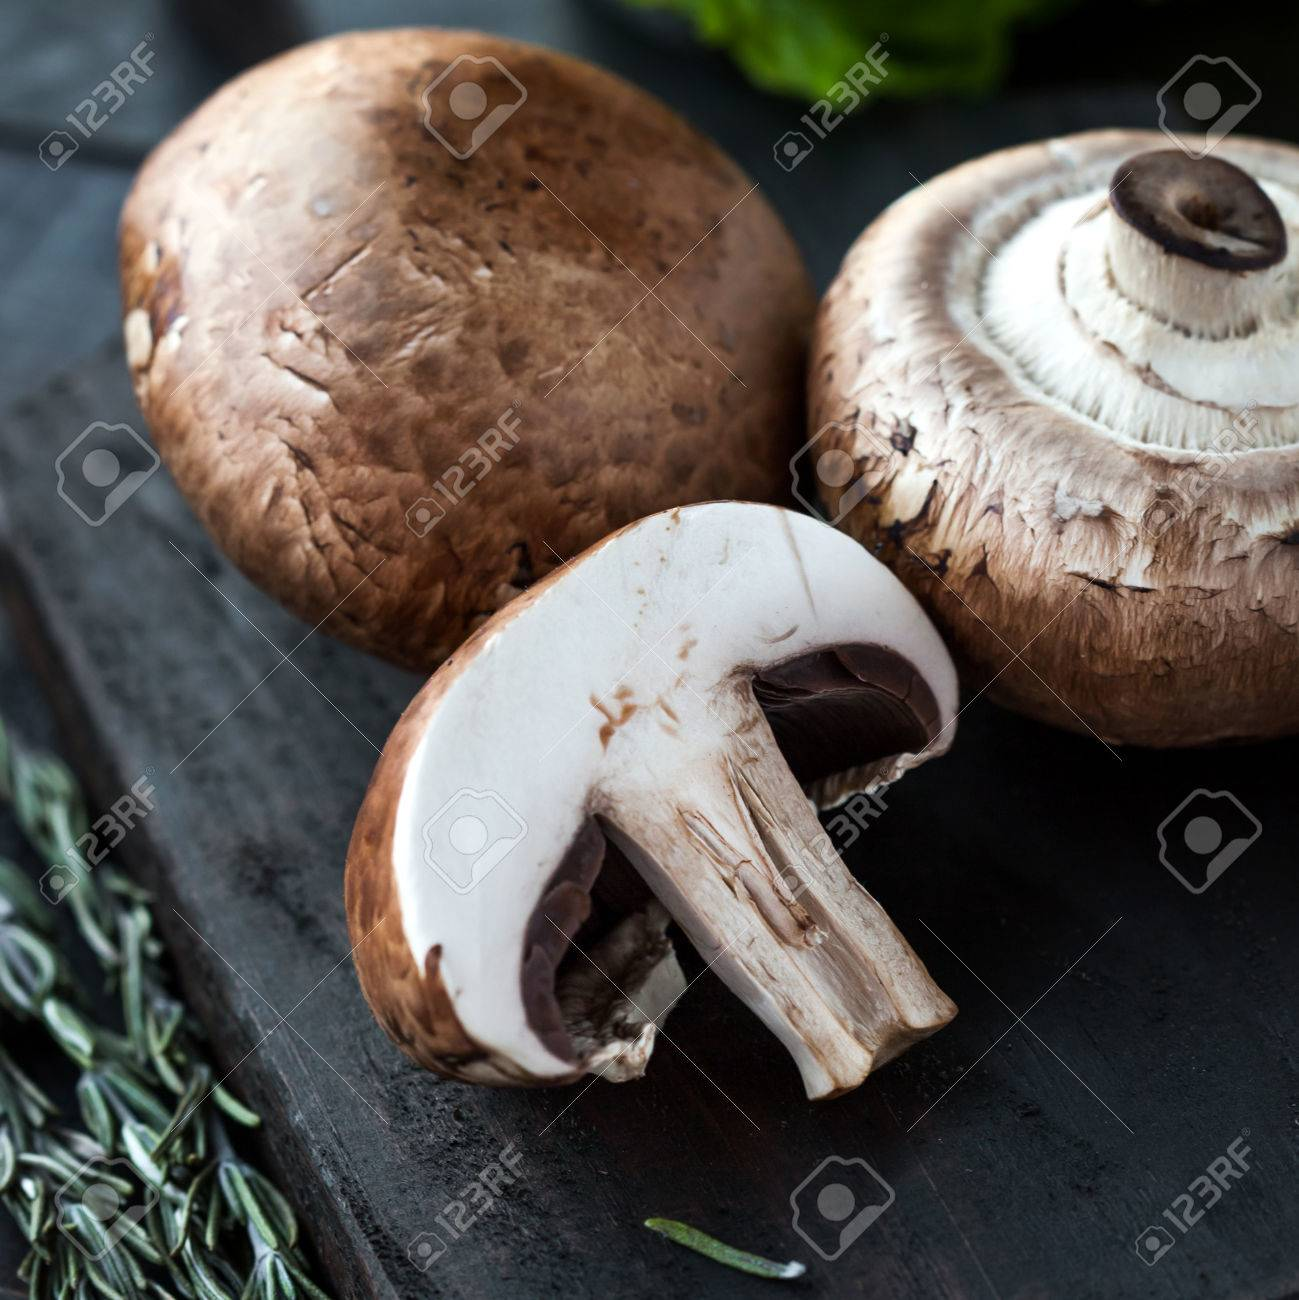 Raw Portobello Mushrooms With Rosemary On Cutting Board On Dark Stock Photo Picture And Royalty Free Image Image 36490625